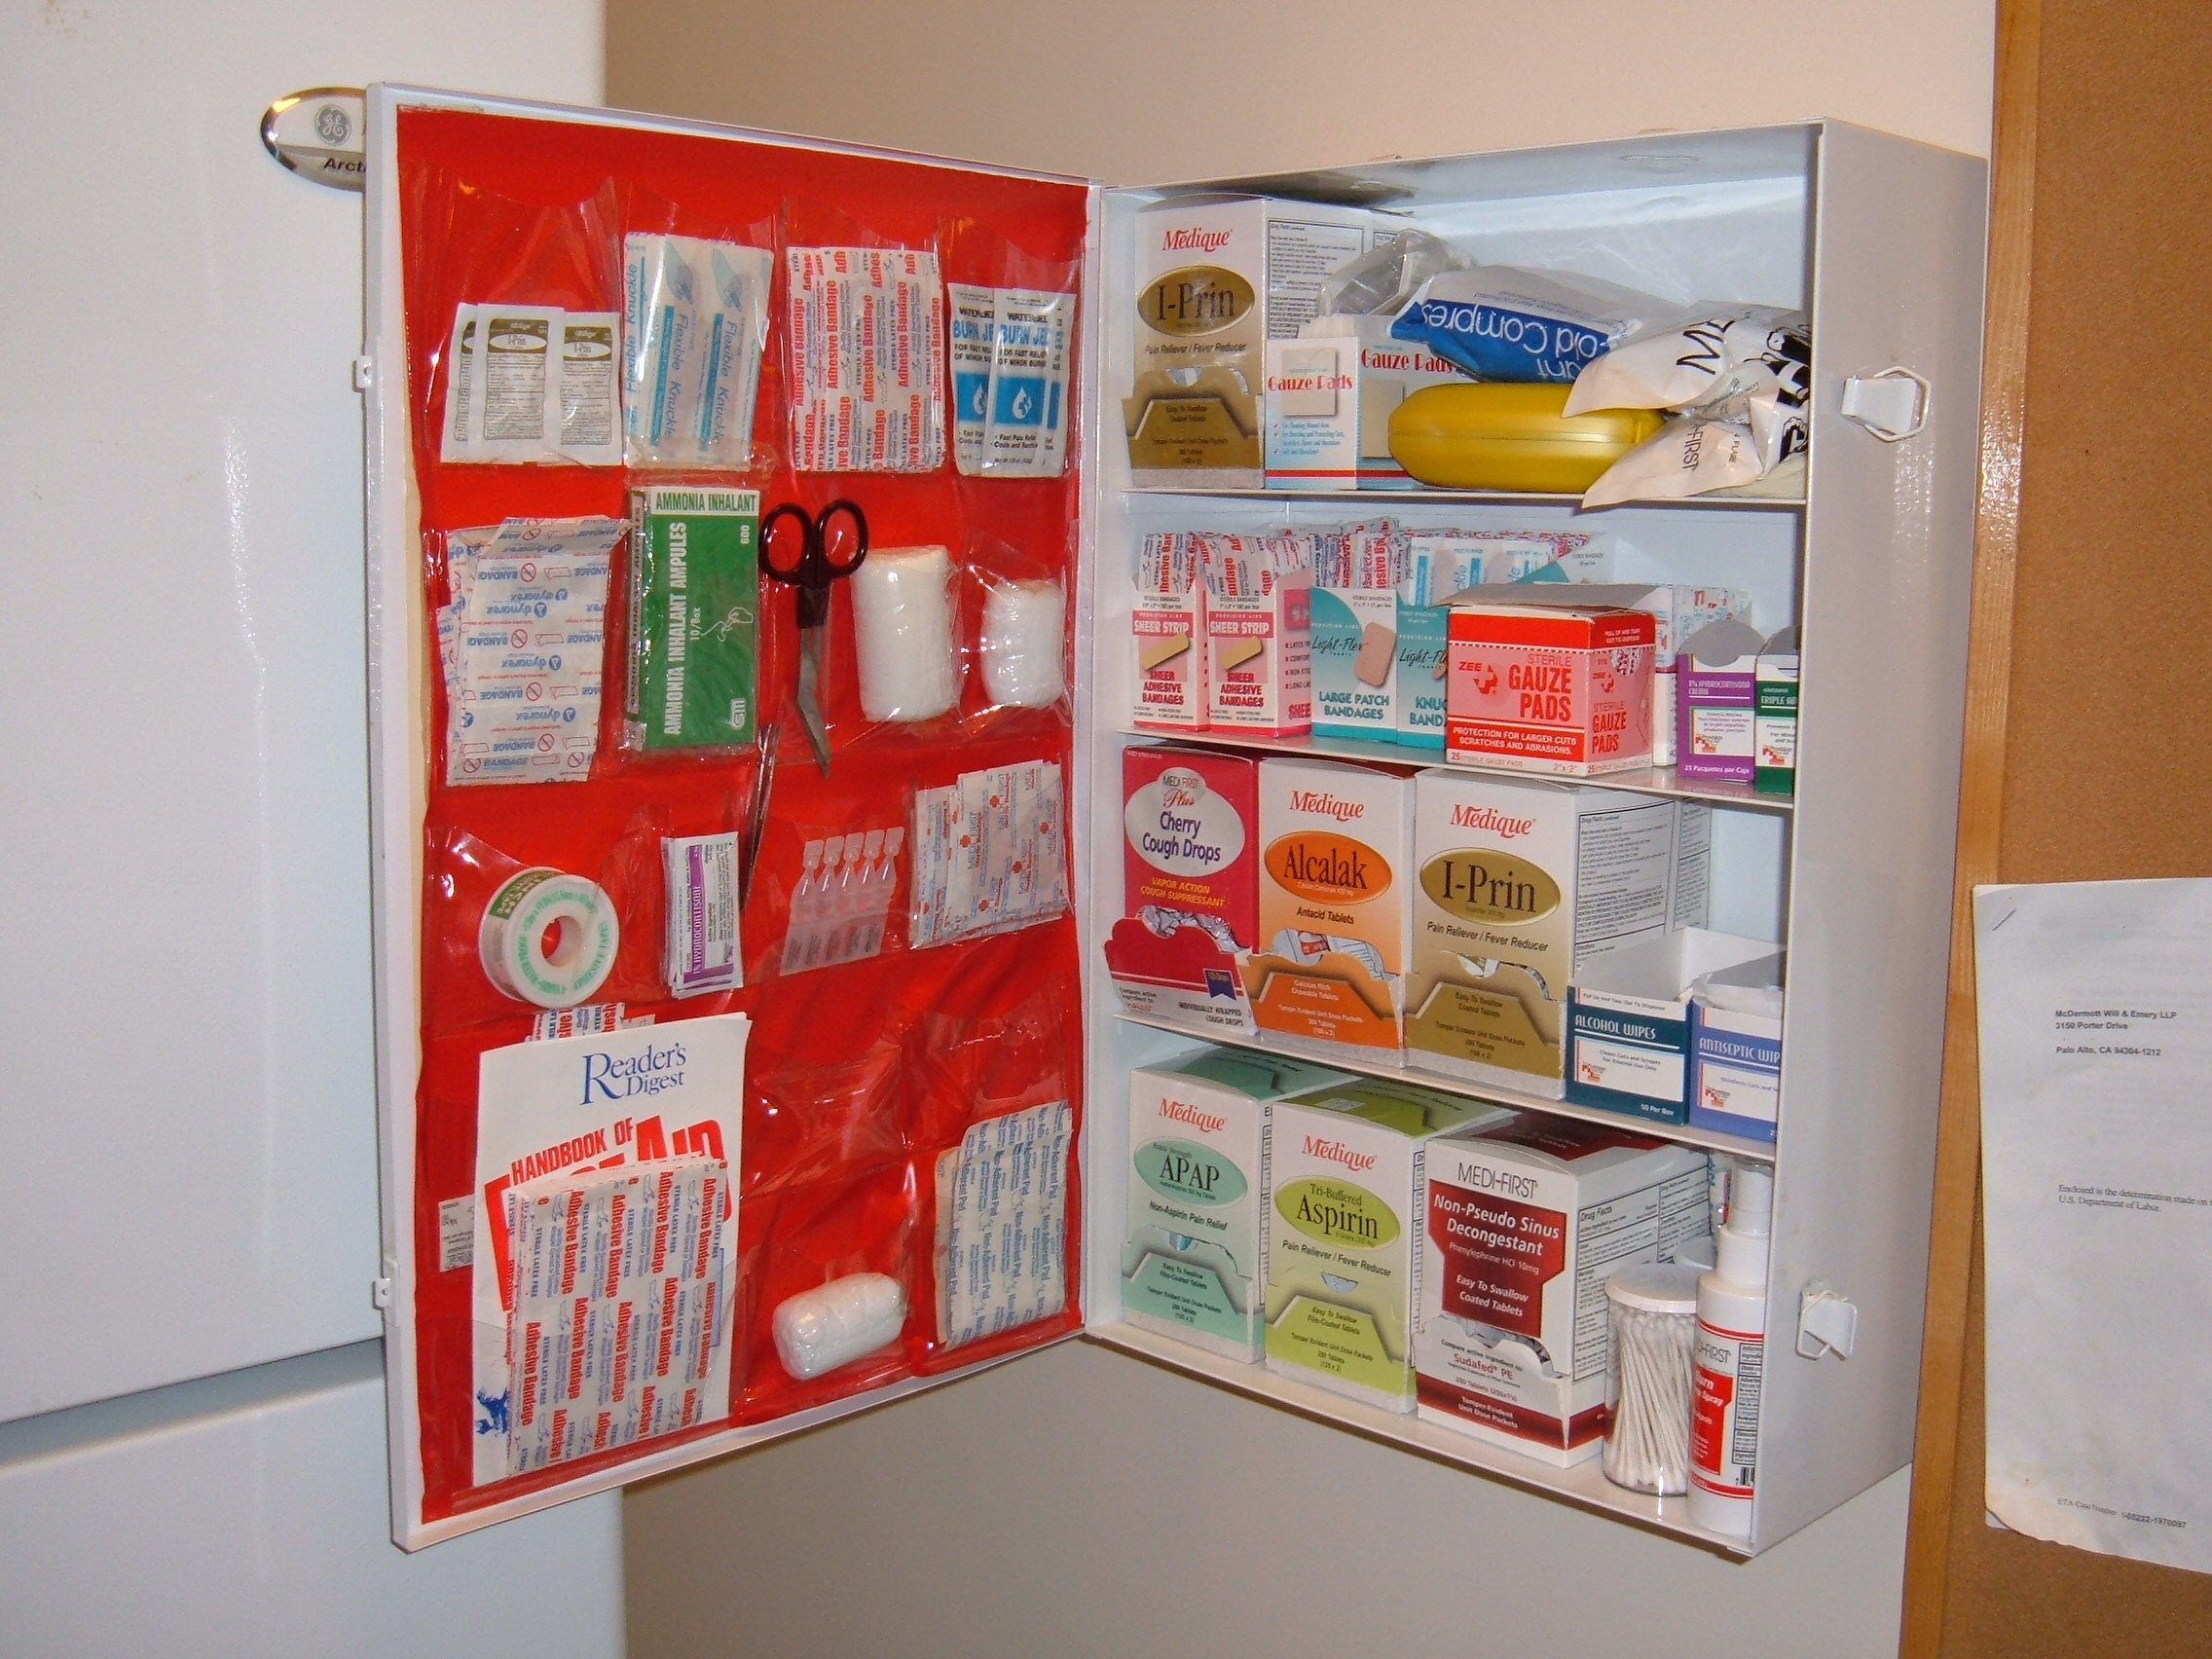 File:Medlife Services first aid cabinet.JPG - Wikimedia Commons